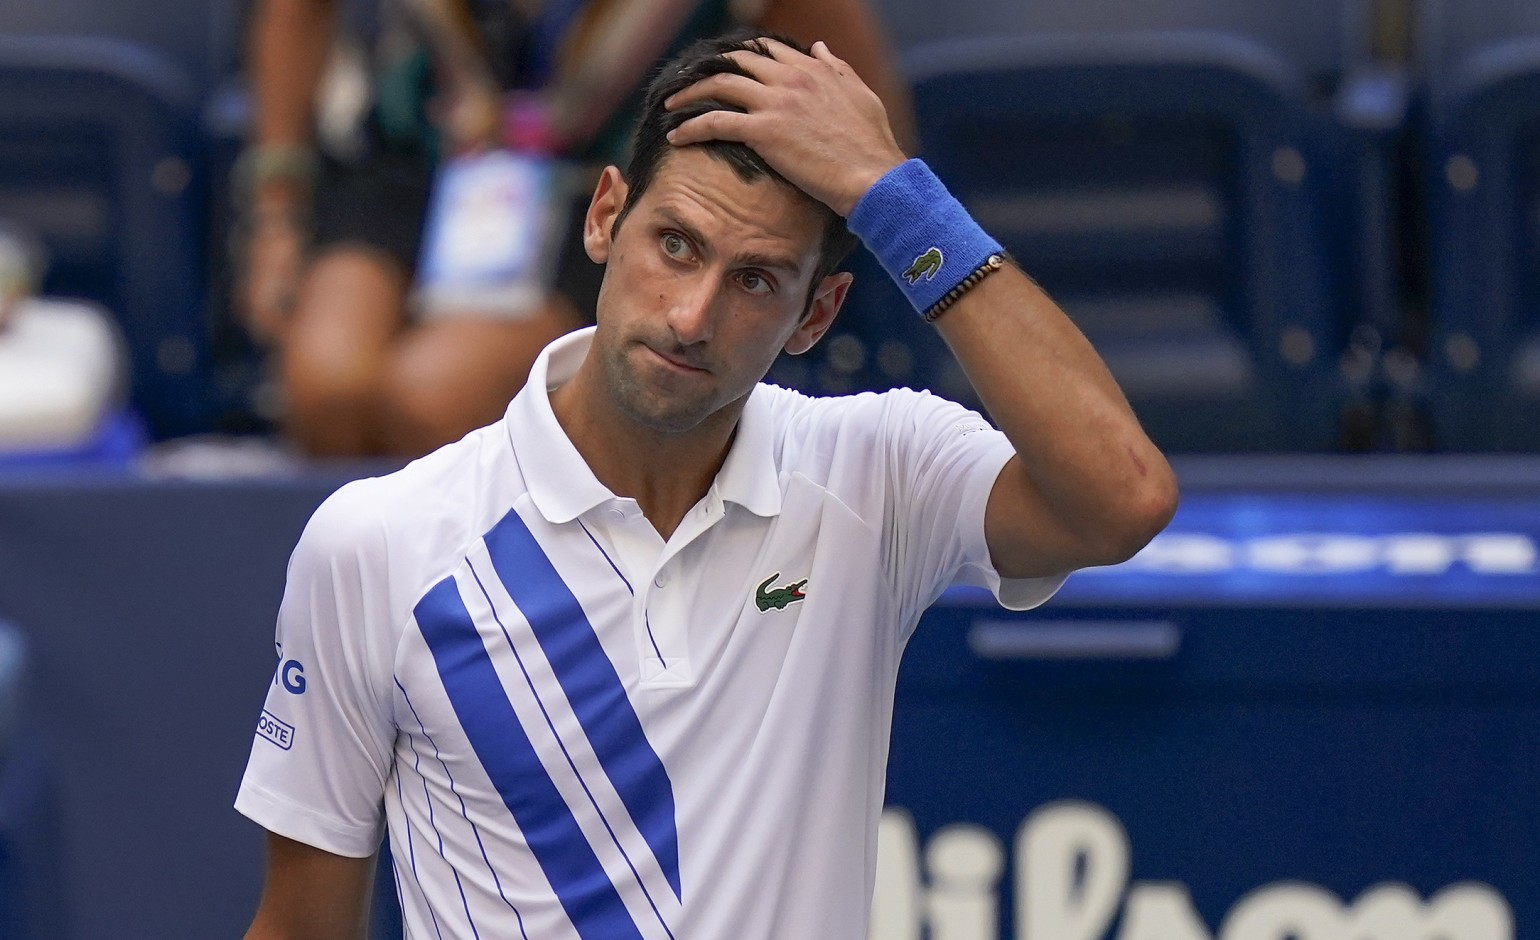 Having messed up,